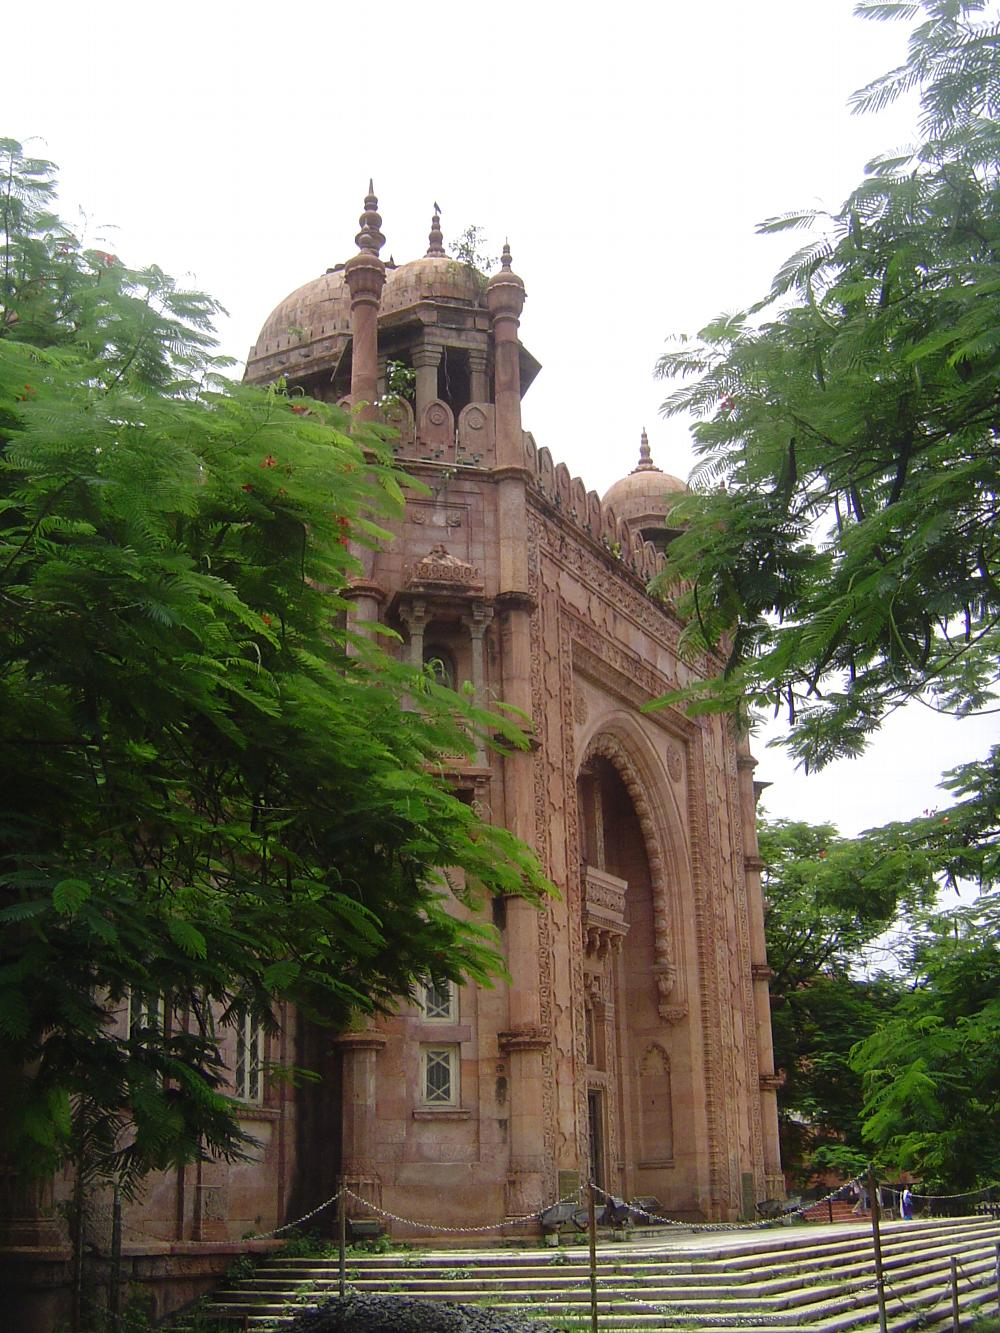 Peninsular India: Chennai / Madras 2: British Public Buildings picture 11